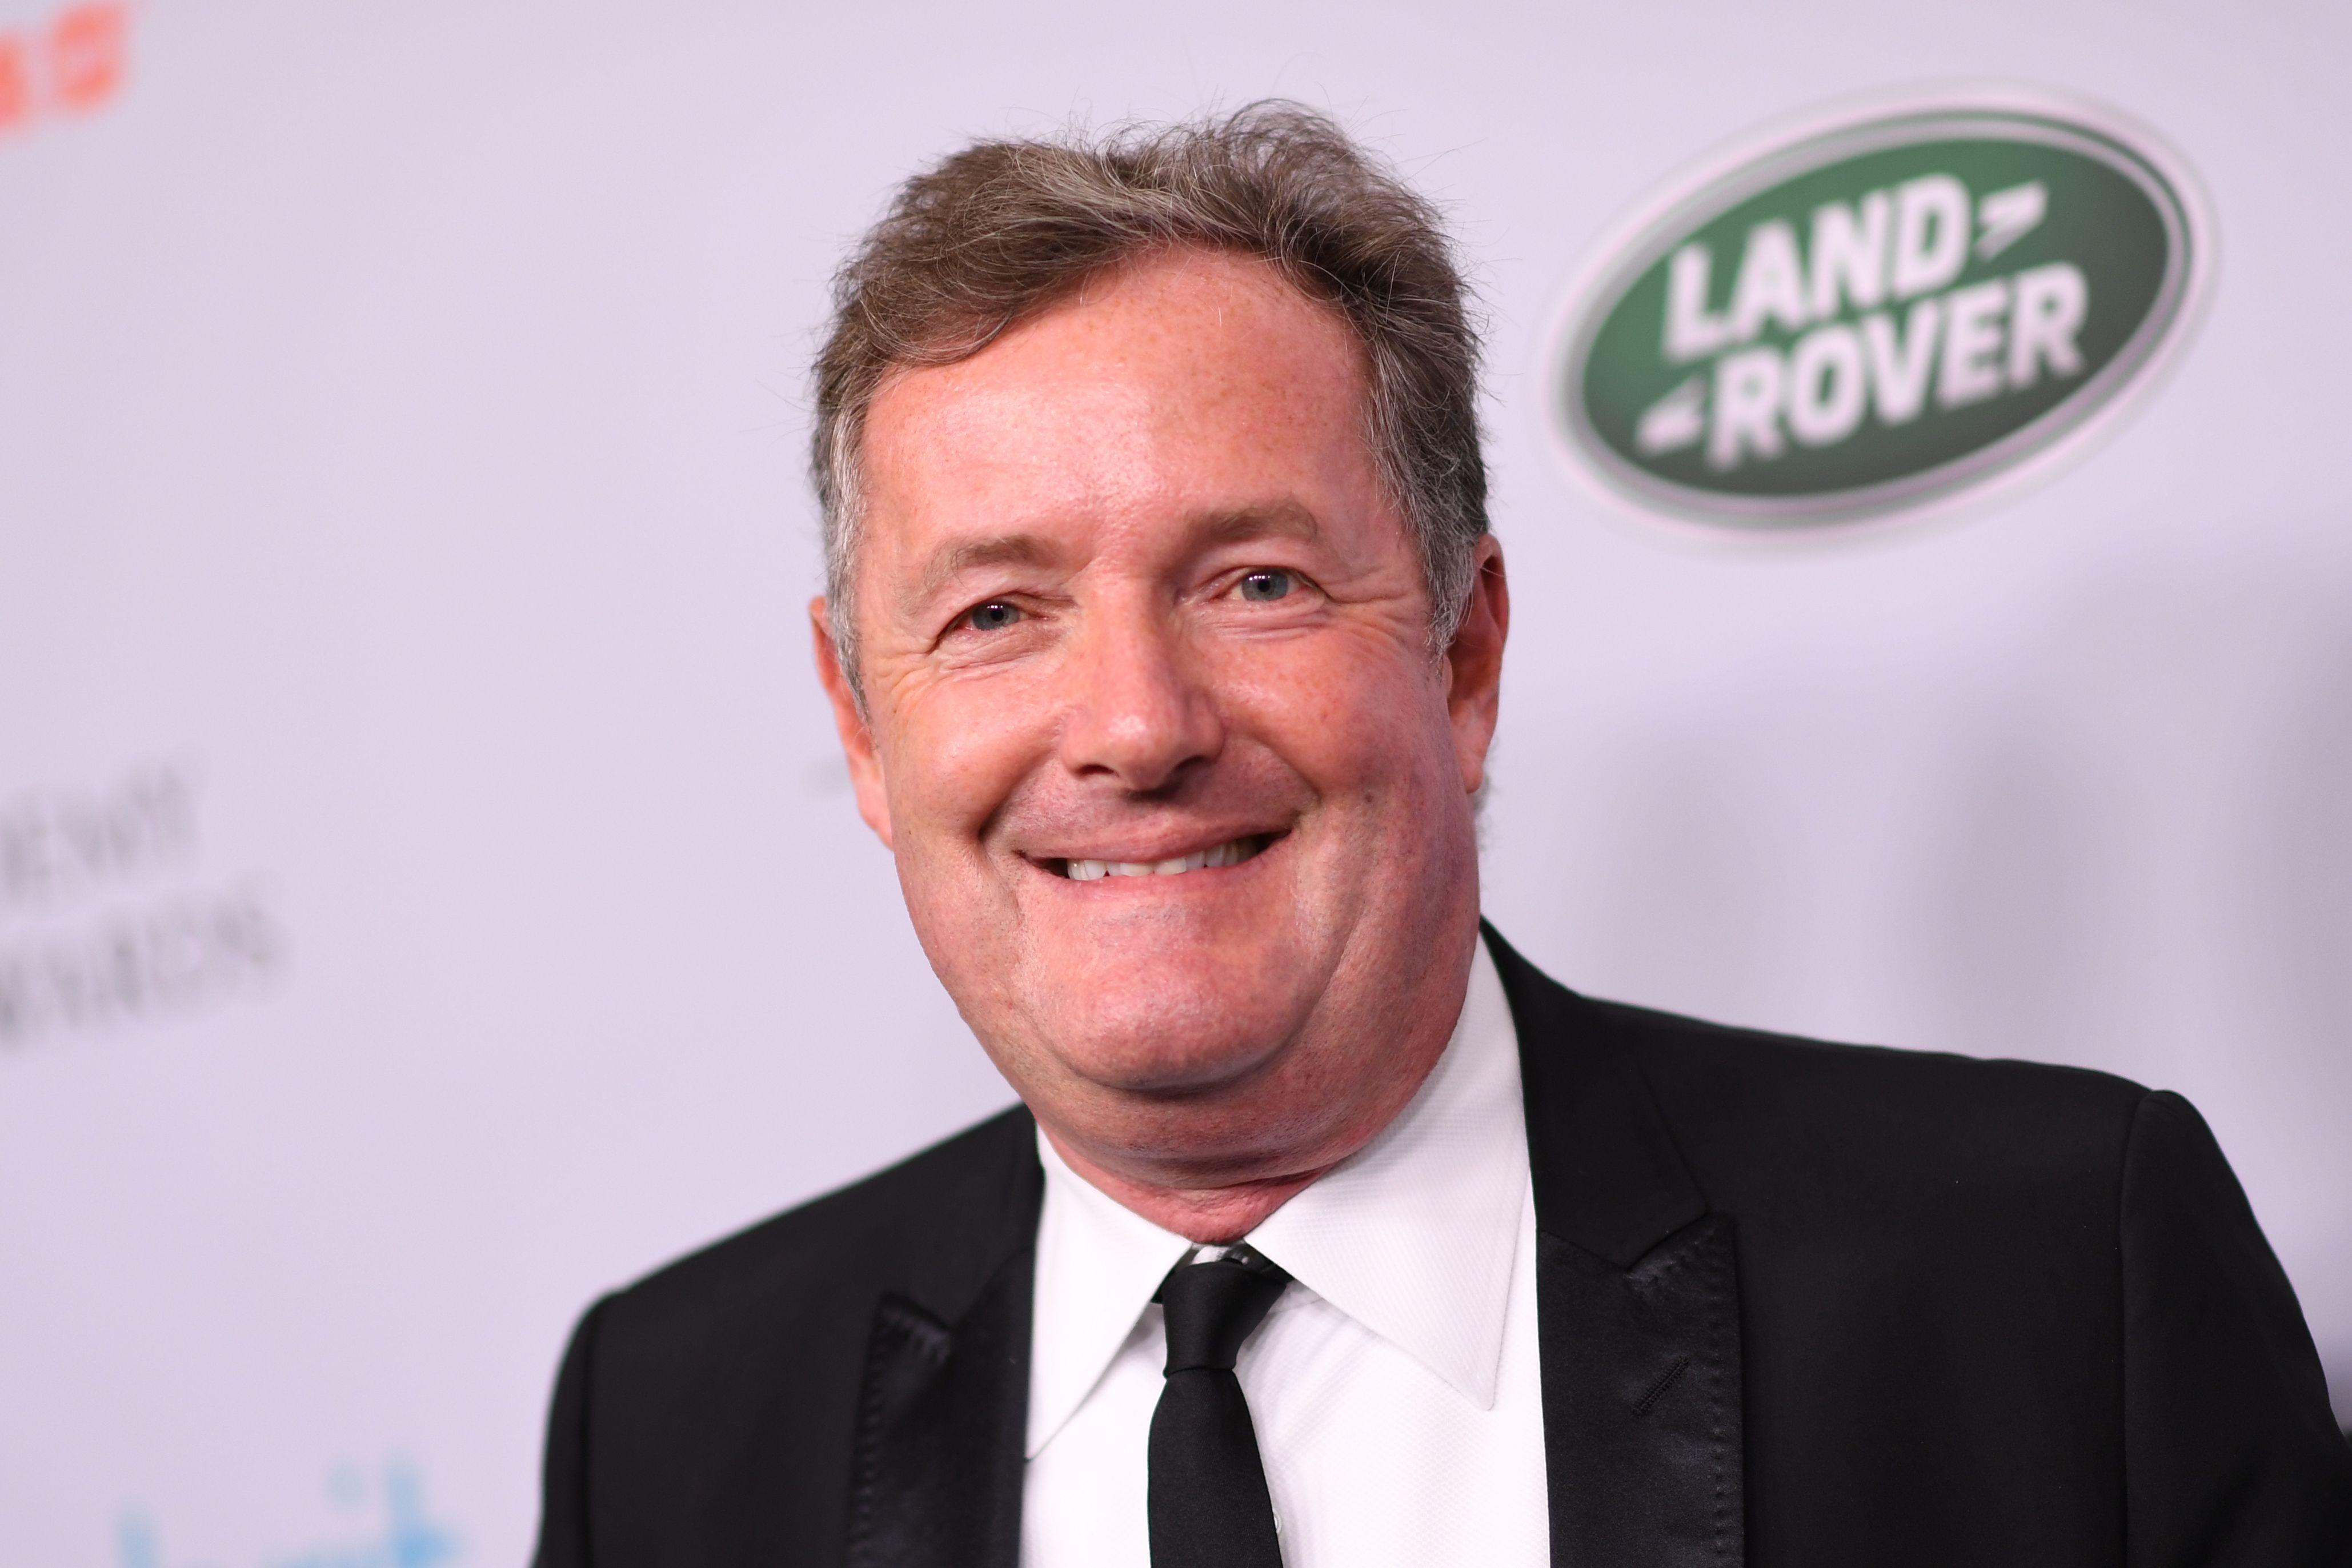 Piers Morgan responds to critics saying he has it easy in lockdown with post of modest garden